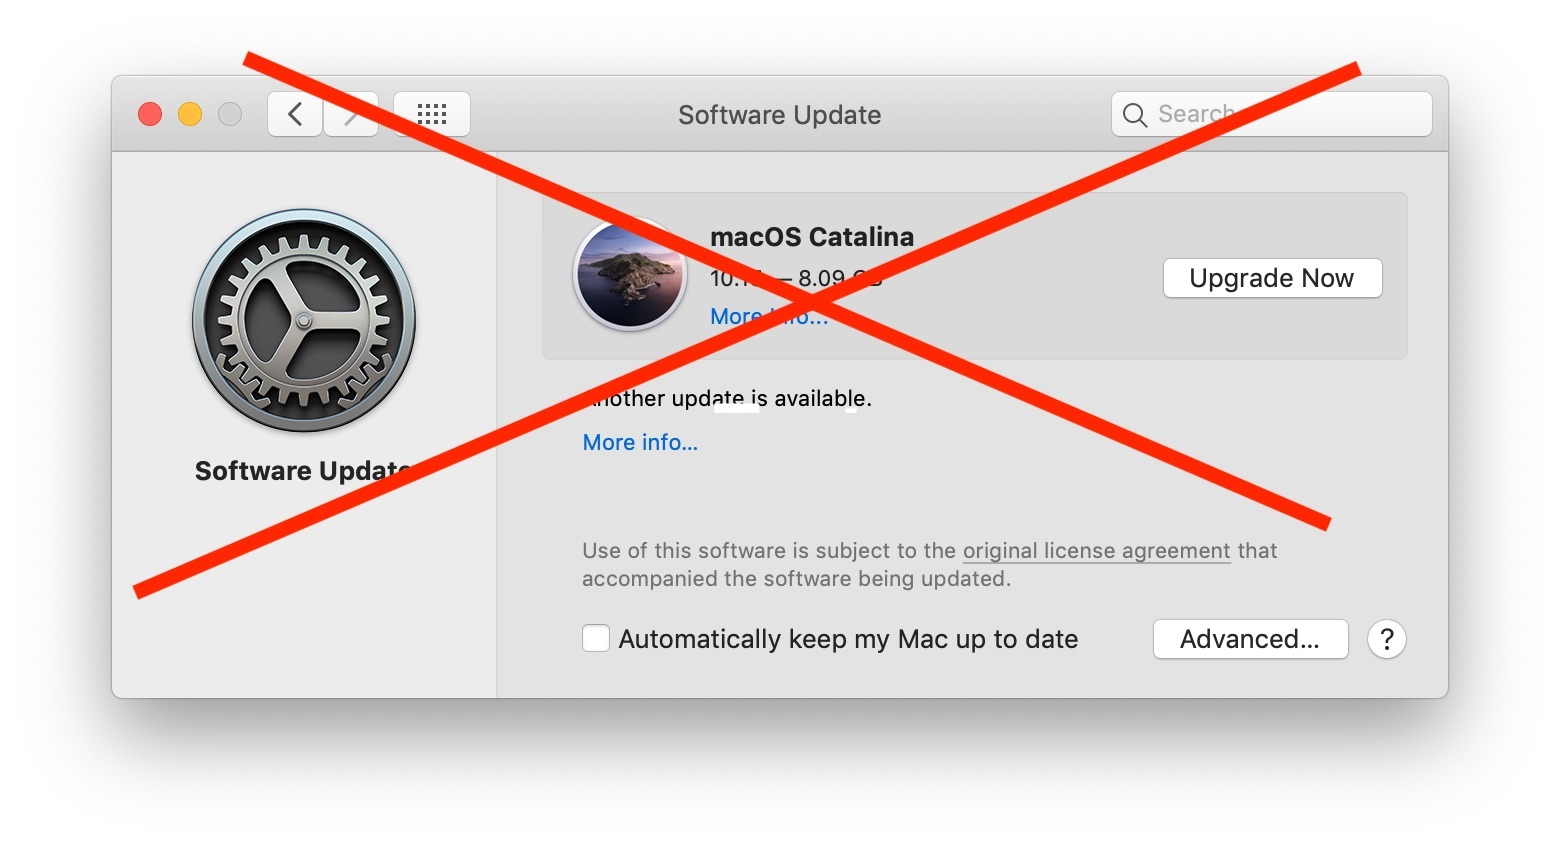 How to Hide MacOS Catalina from Software Update on Mac